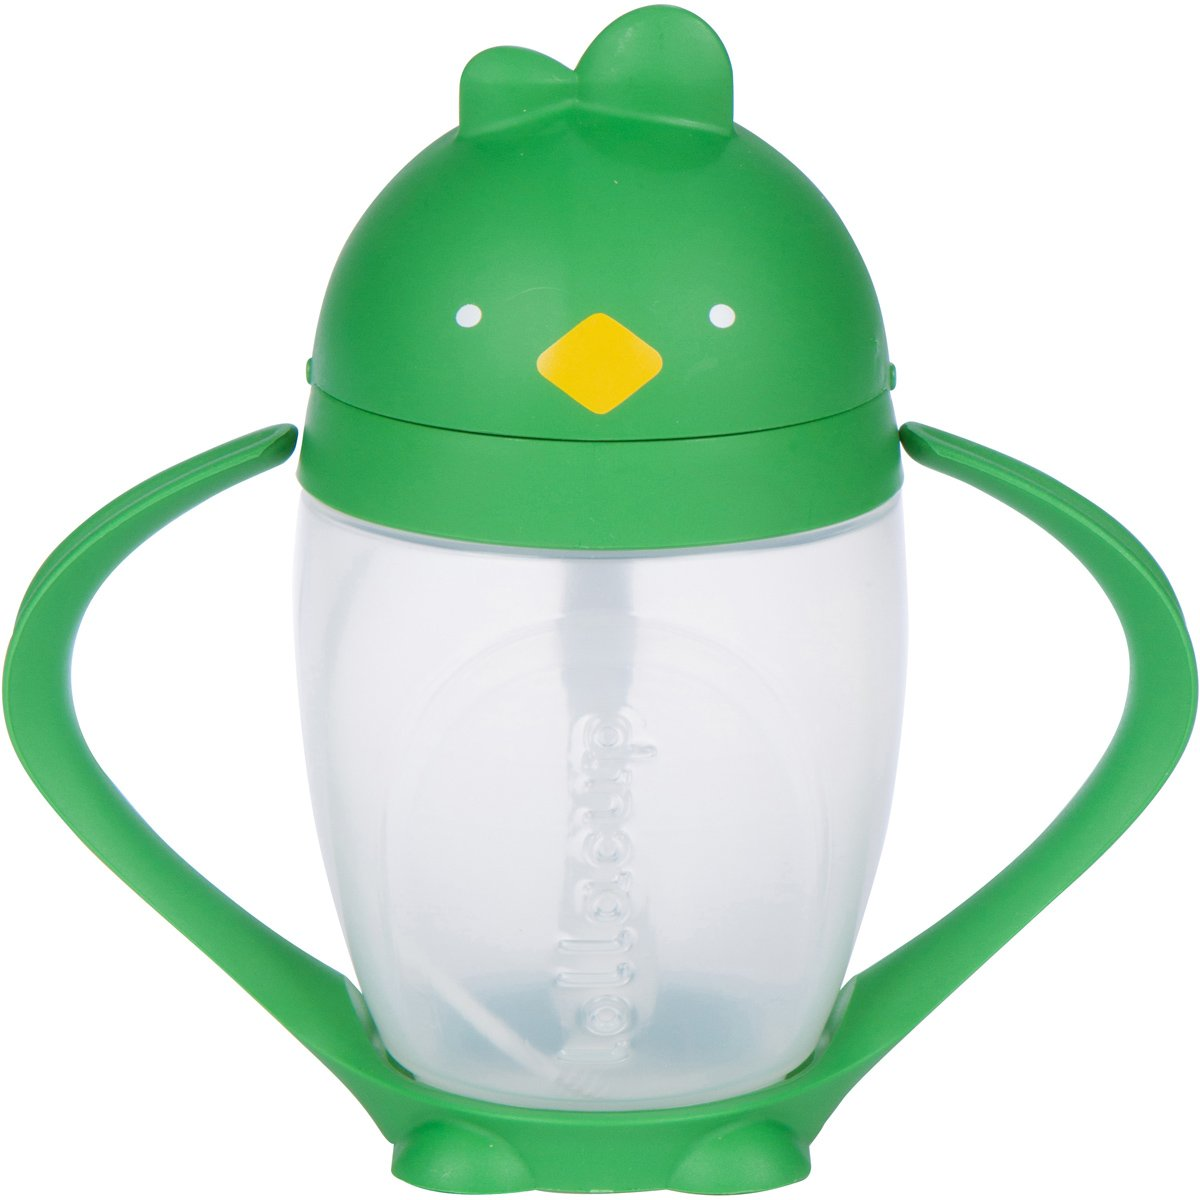 Lollaland Lollacup, Green   10 oz Straw Sippy Cup with Weighted Straw Made in USA